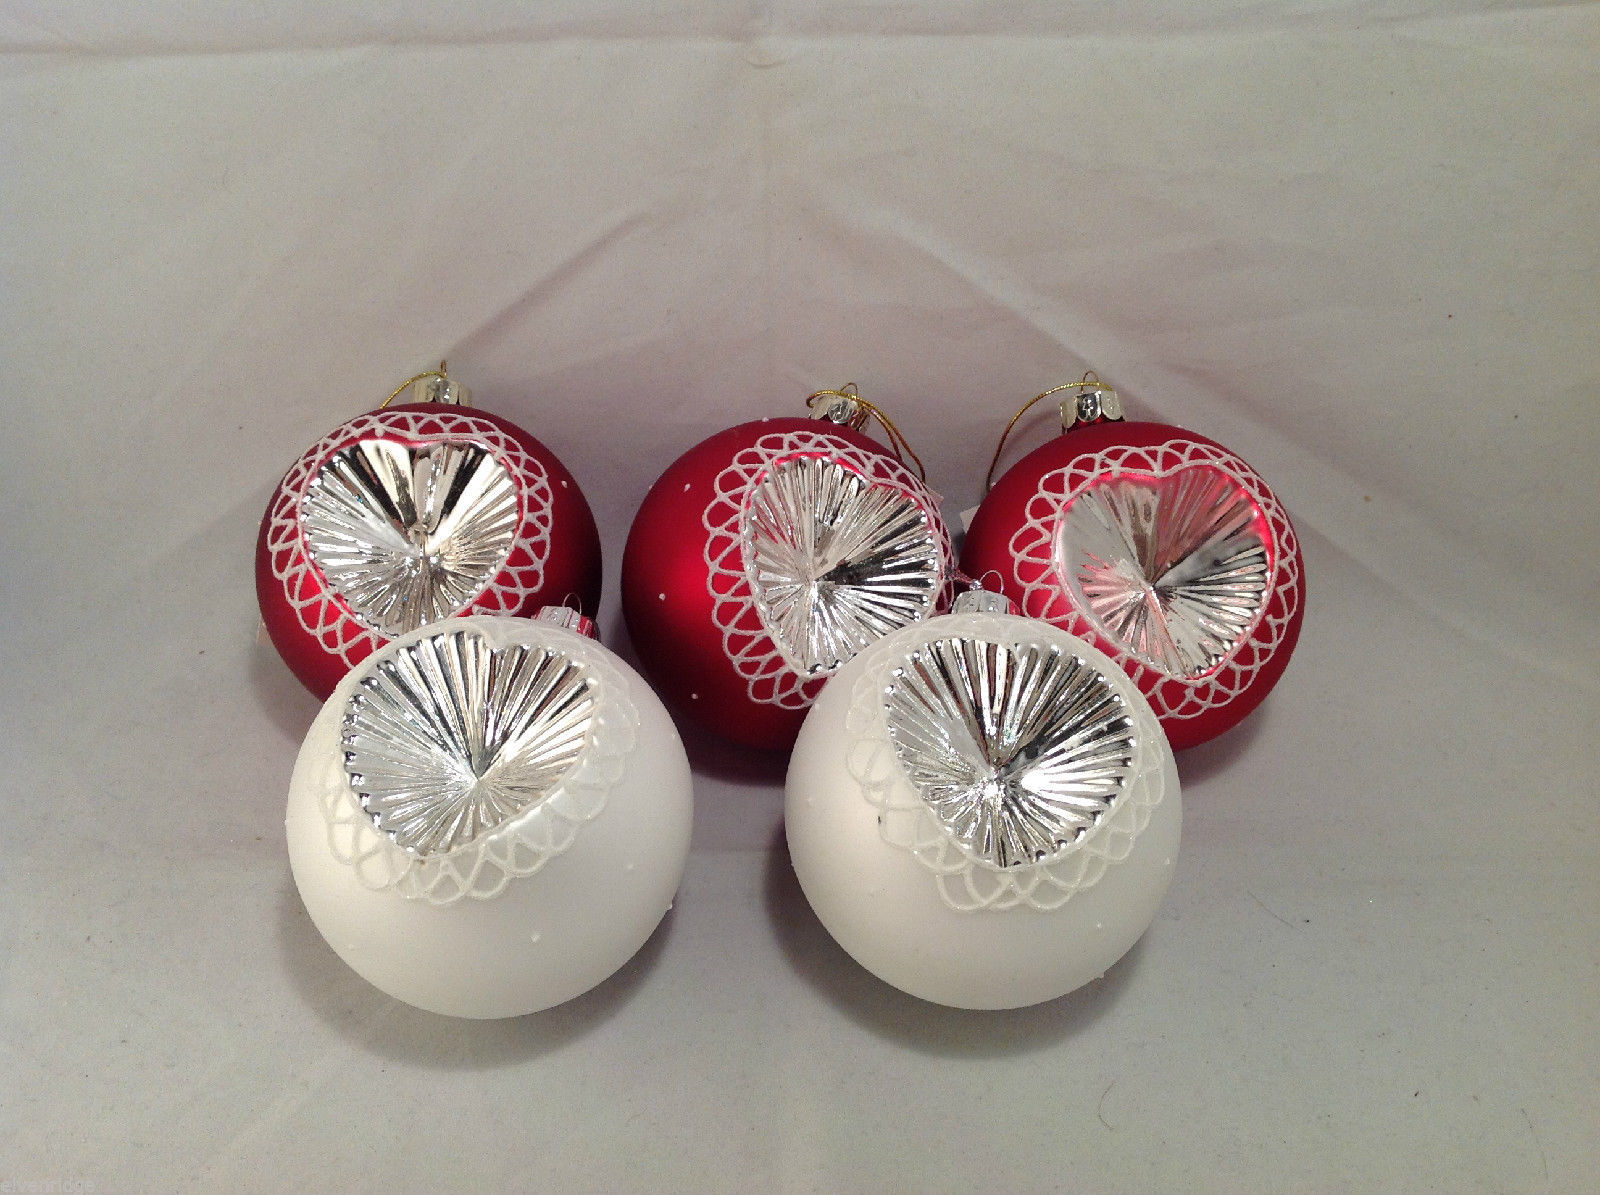 Red White Blown Glass Ball with Heart Holiday Ornament, Set of 5.